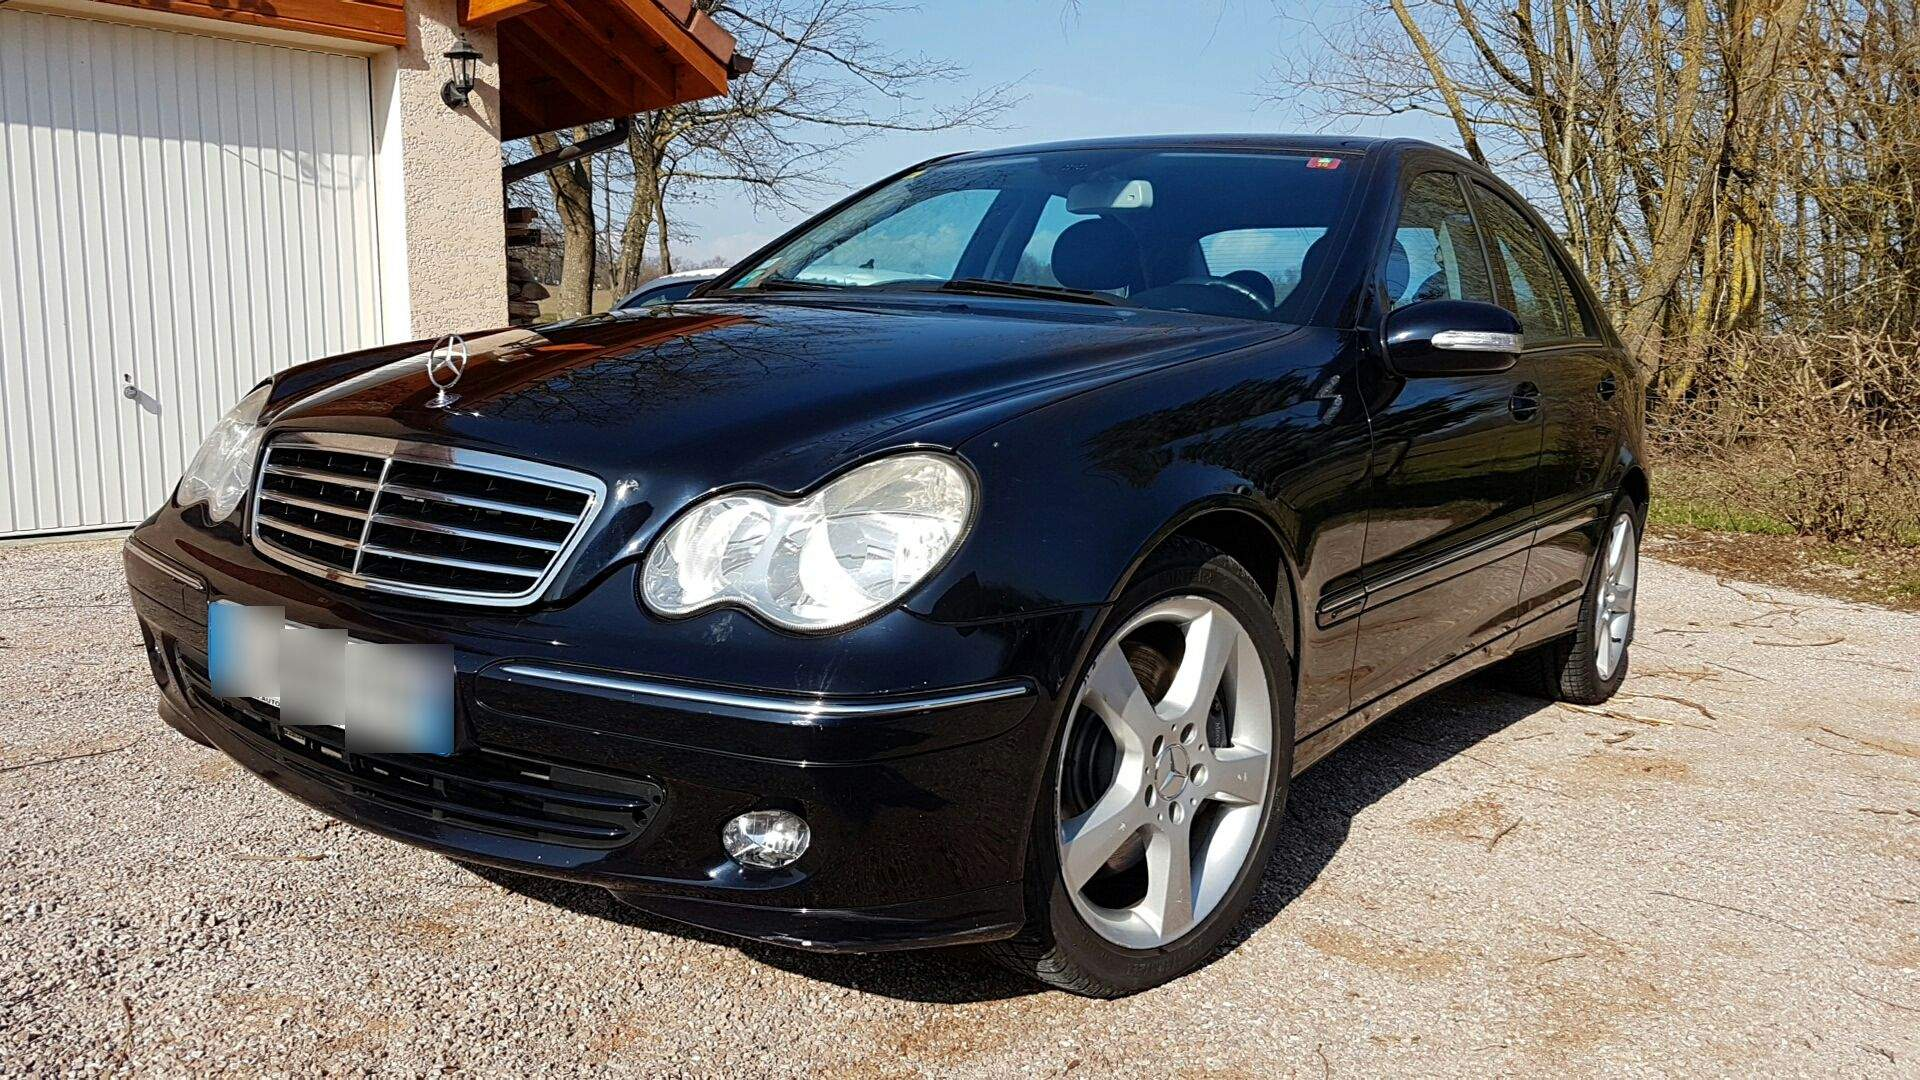 voiture mercedes classe c occasion diesel 2006 108000 km 11100 paris paris. Black Bedroom Furniture Sets. Home Design Ideas